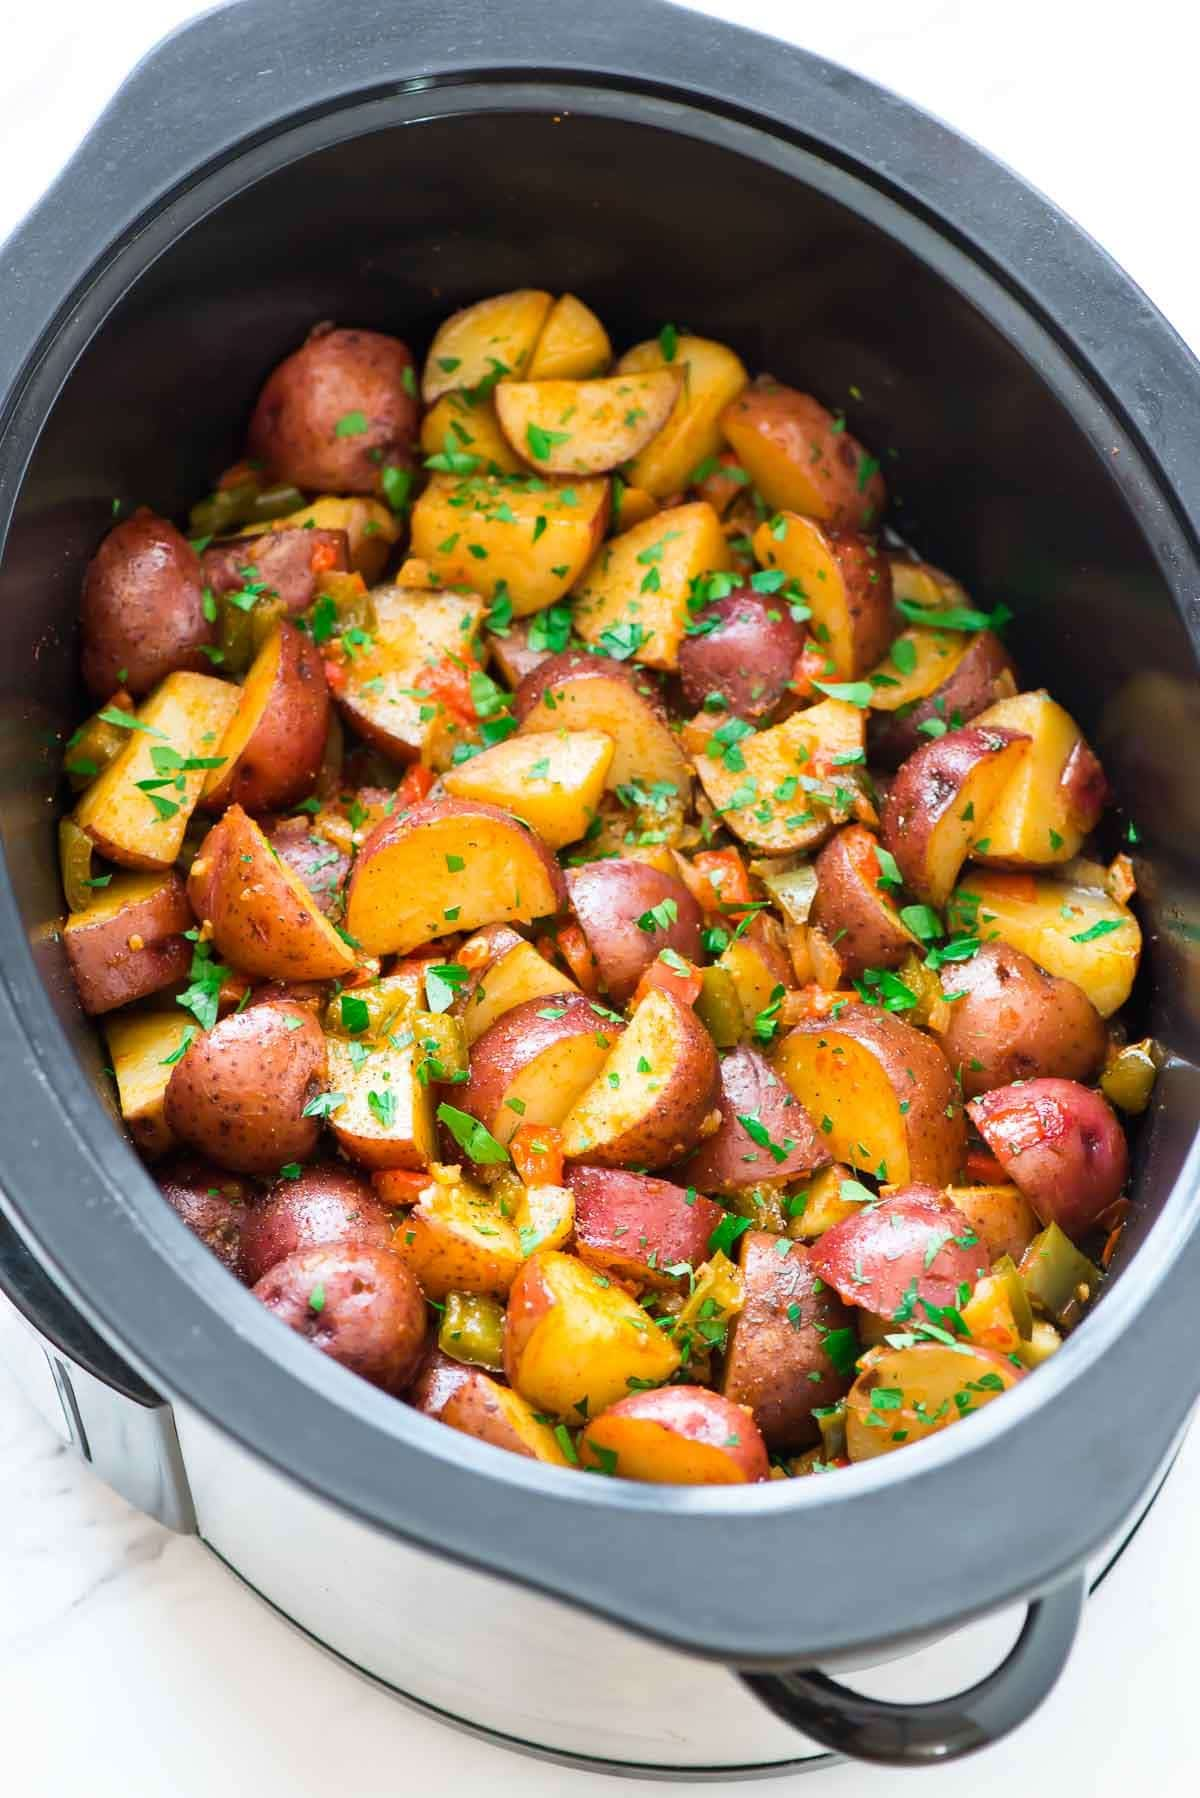 Crockpot breakfast potatoes for Healthy vegetarian crock pot recipes easy